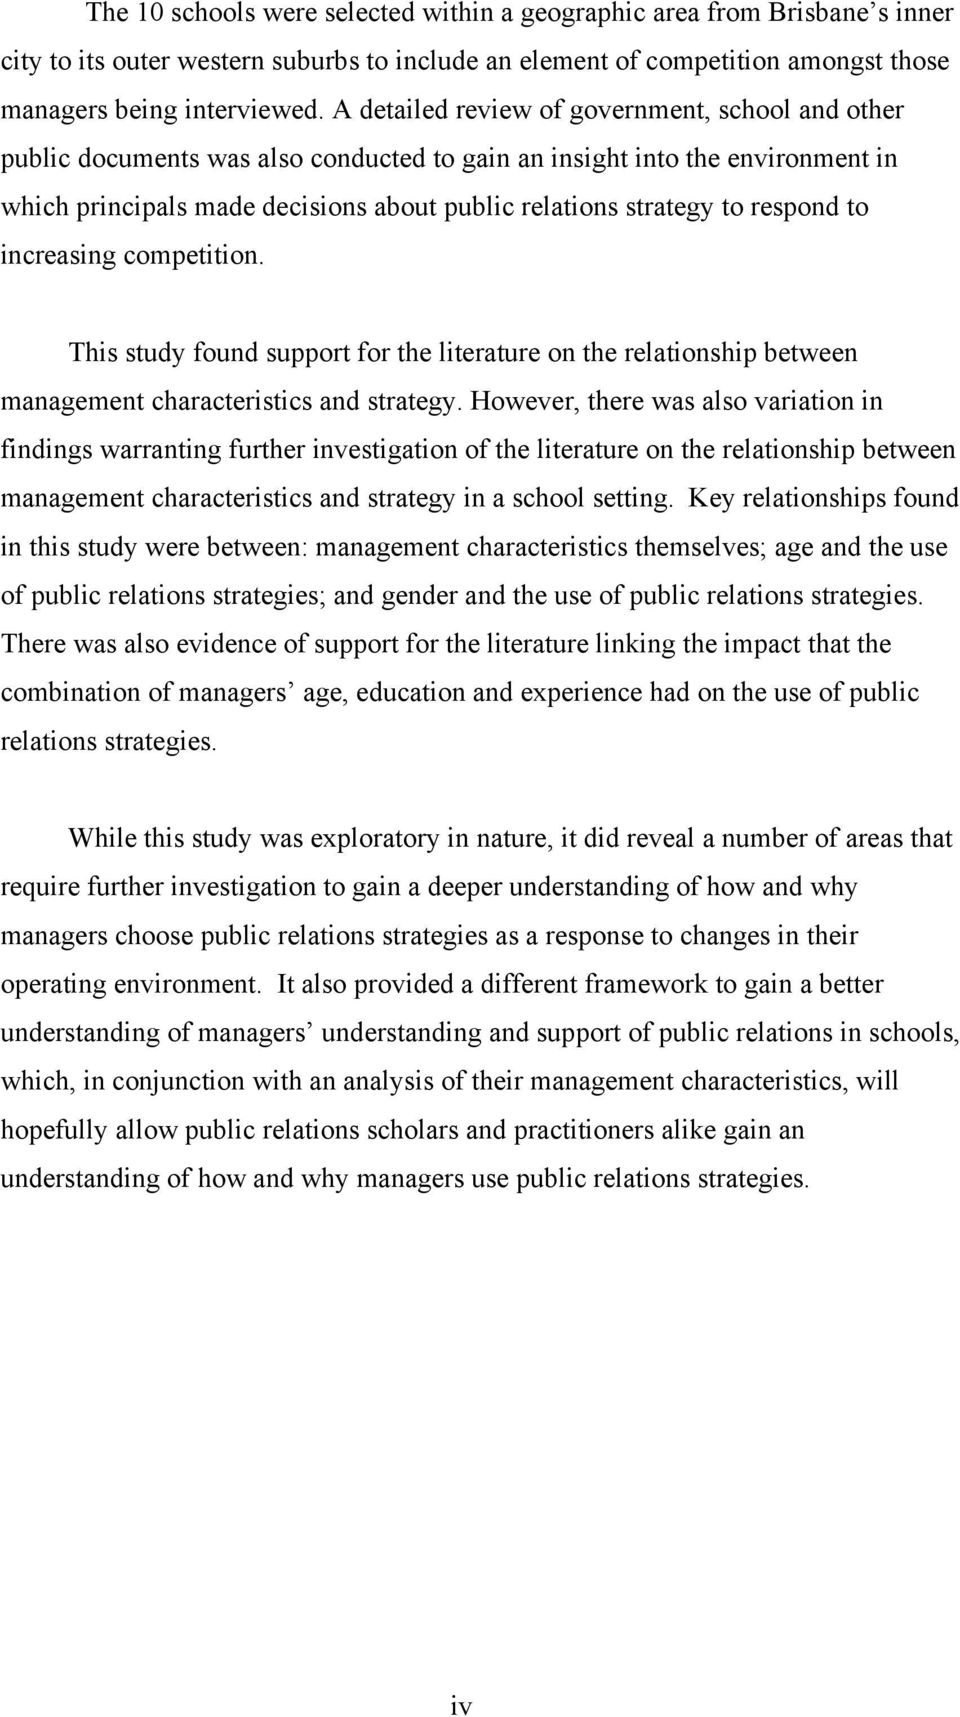 respond to increasing competition. This study found support for the literature on the relationship between management characteristics and strategy.